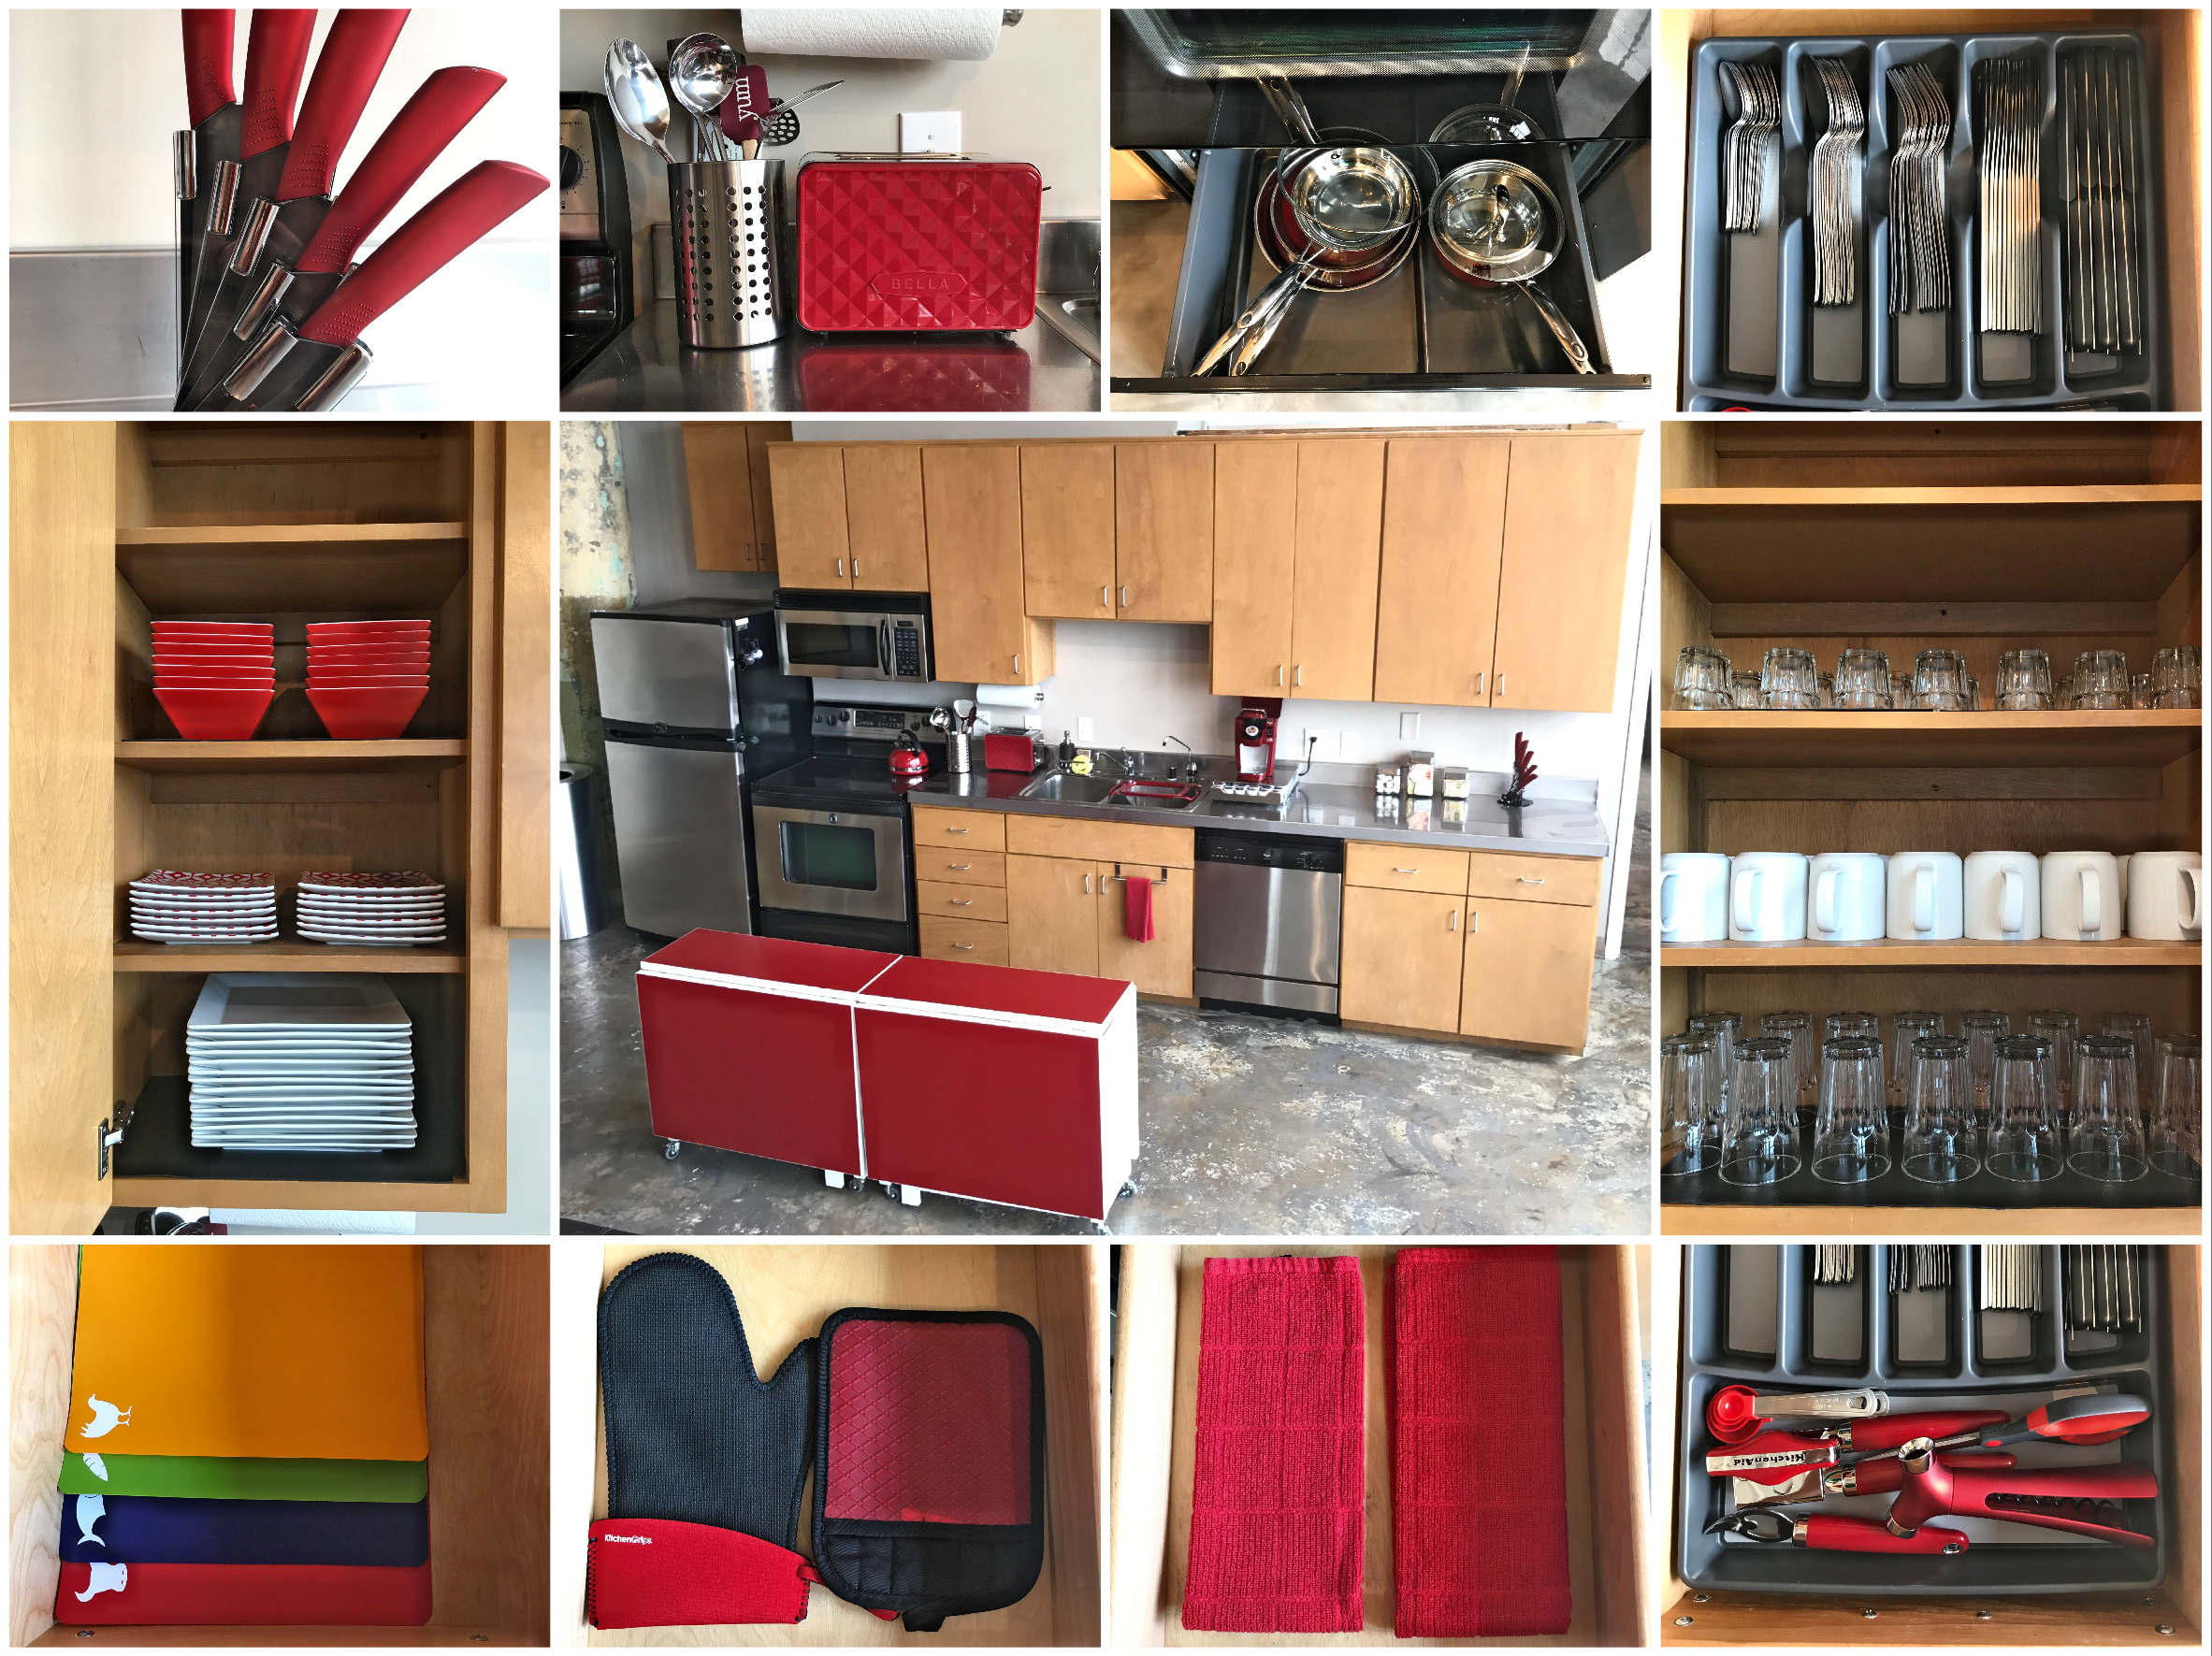 Loft Reverie Hotel 707 Kitchen + Amenities + Towels + Knives + Utensils + Dishes + Cookware